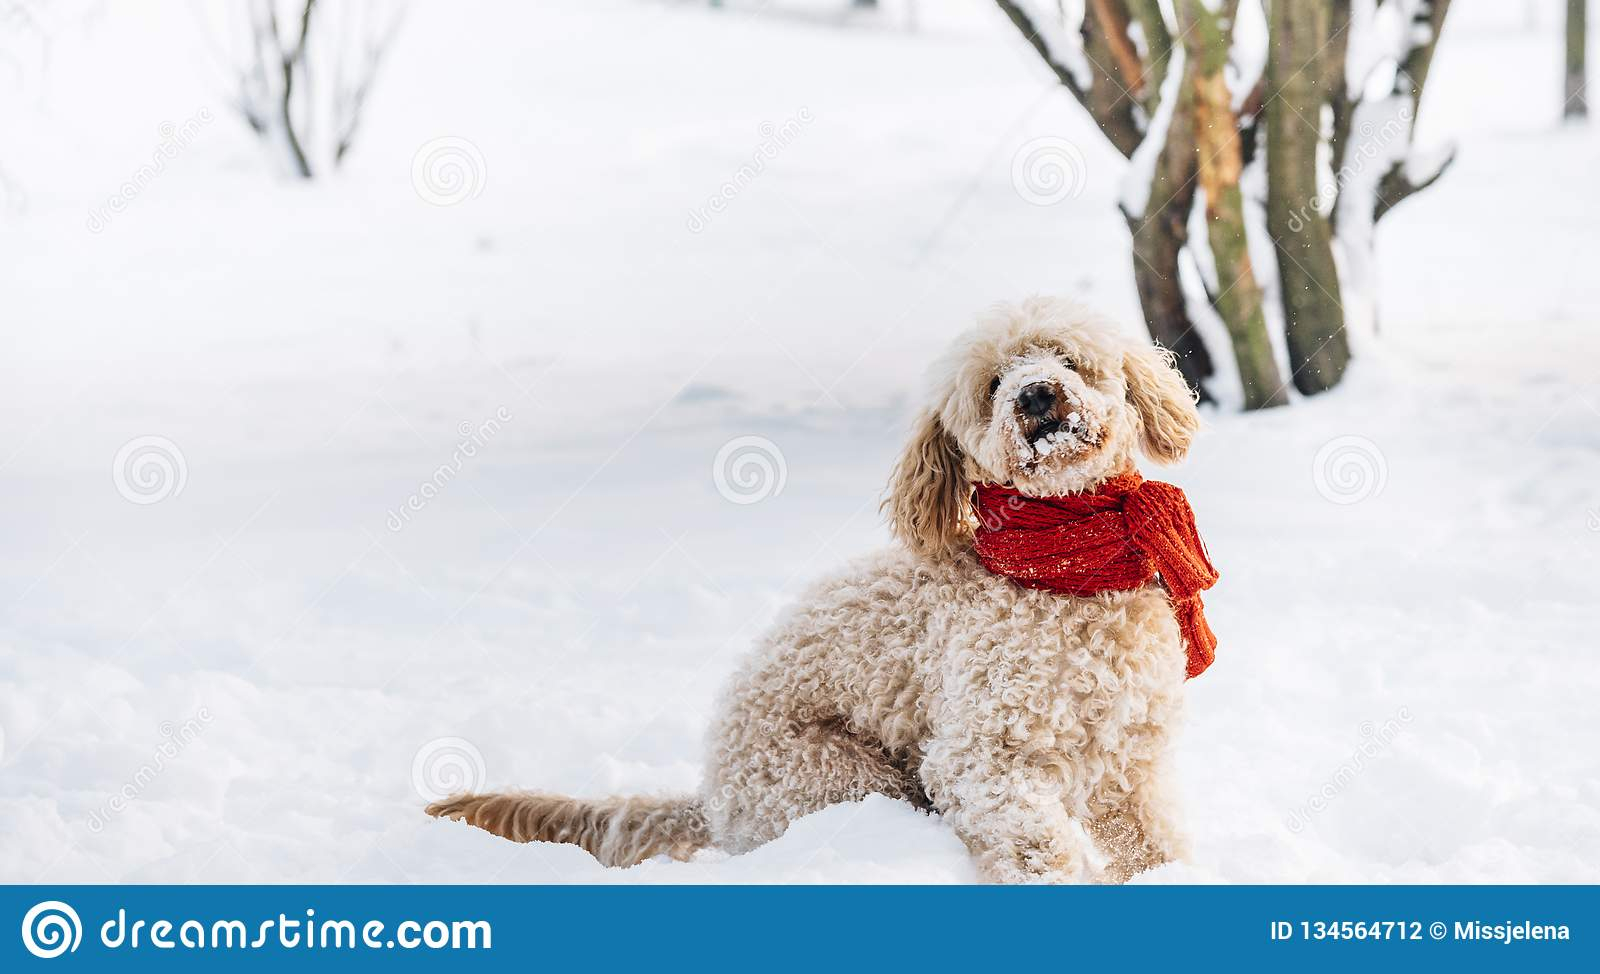 Cute and funny little dog with red scarf playing and jumping in the snow.